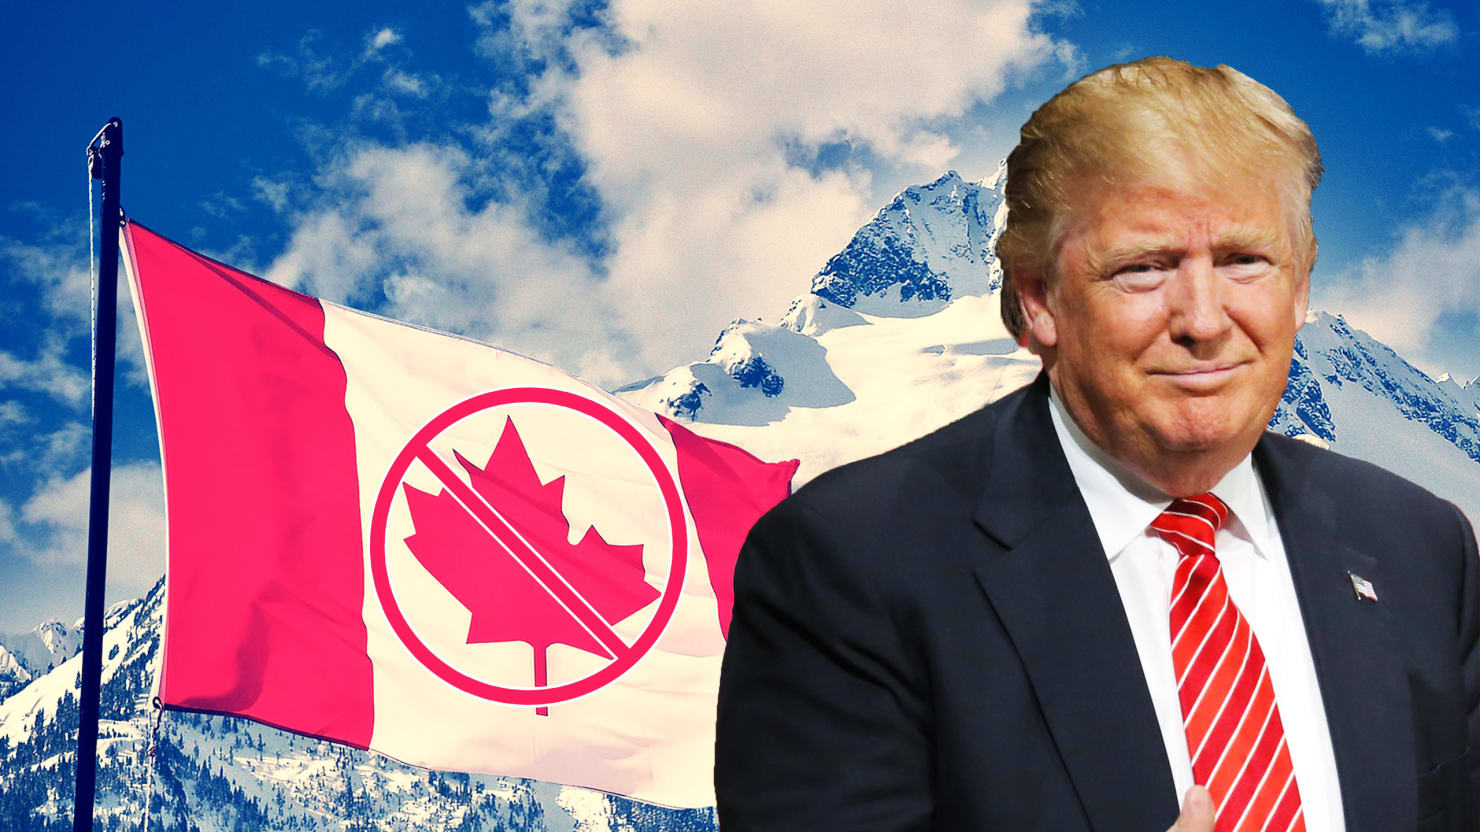 If Trump Wins, My Family Can't Move to Canada